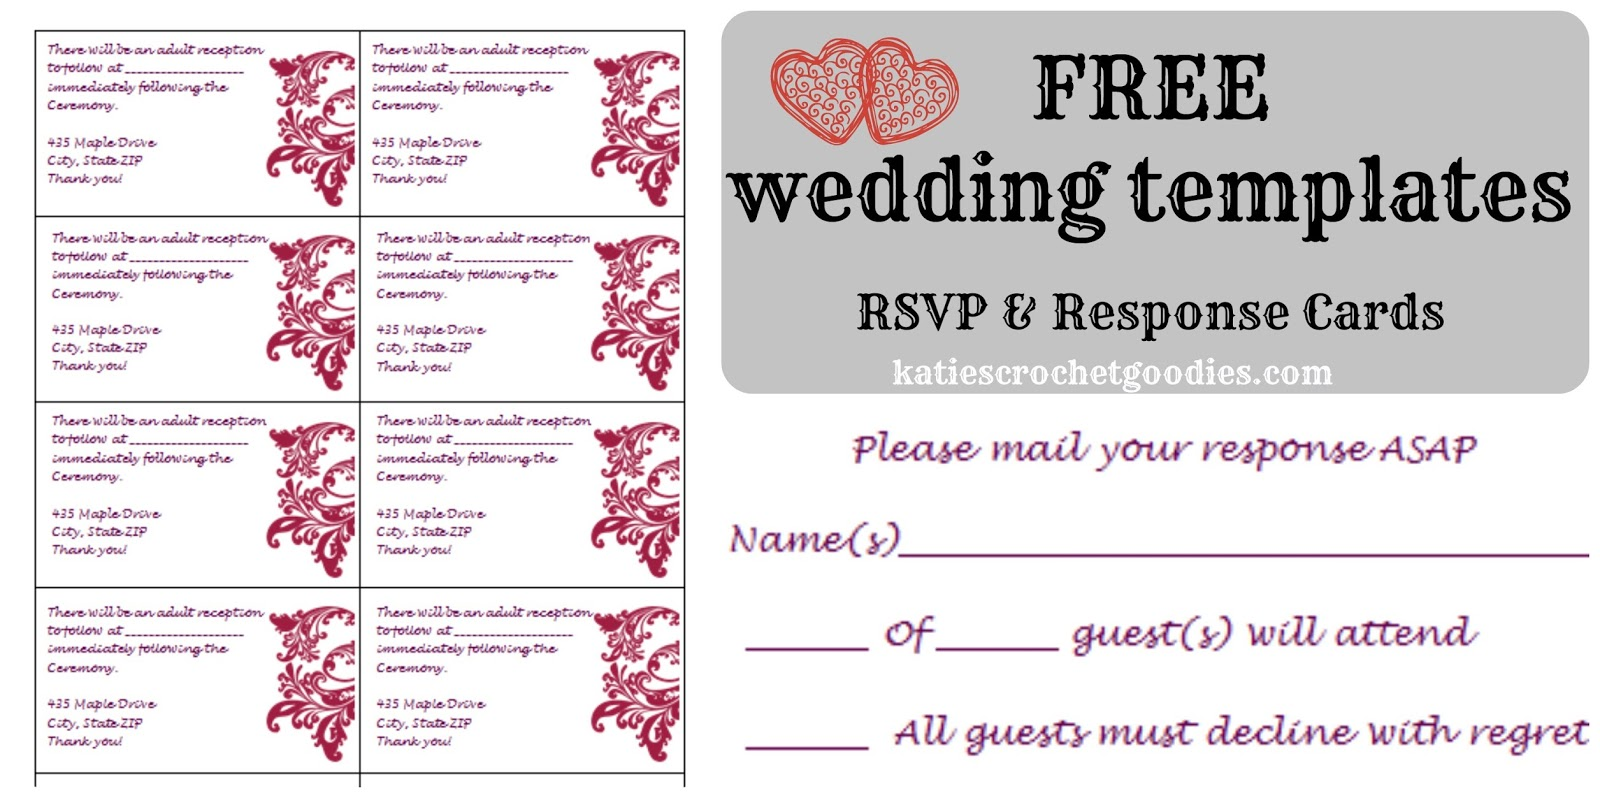 Free Wedding Templates RSVP Reception Cards Katies Crochet - Wedding reception invitation templates free